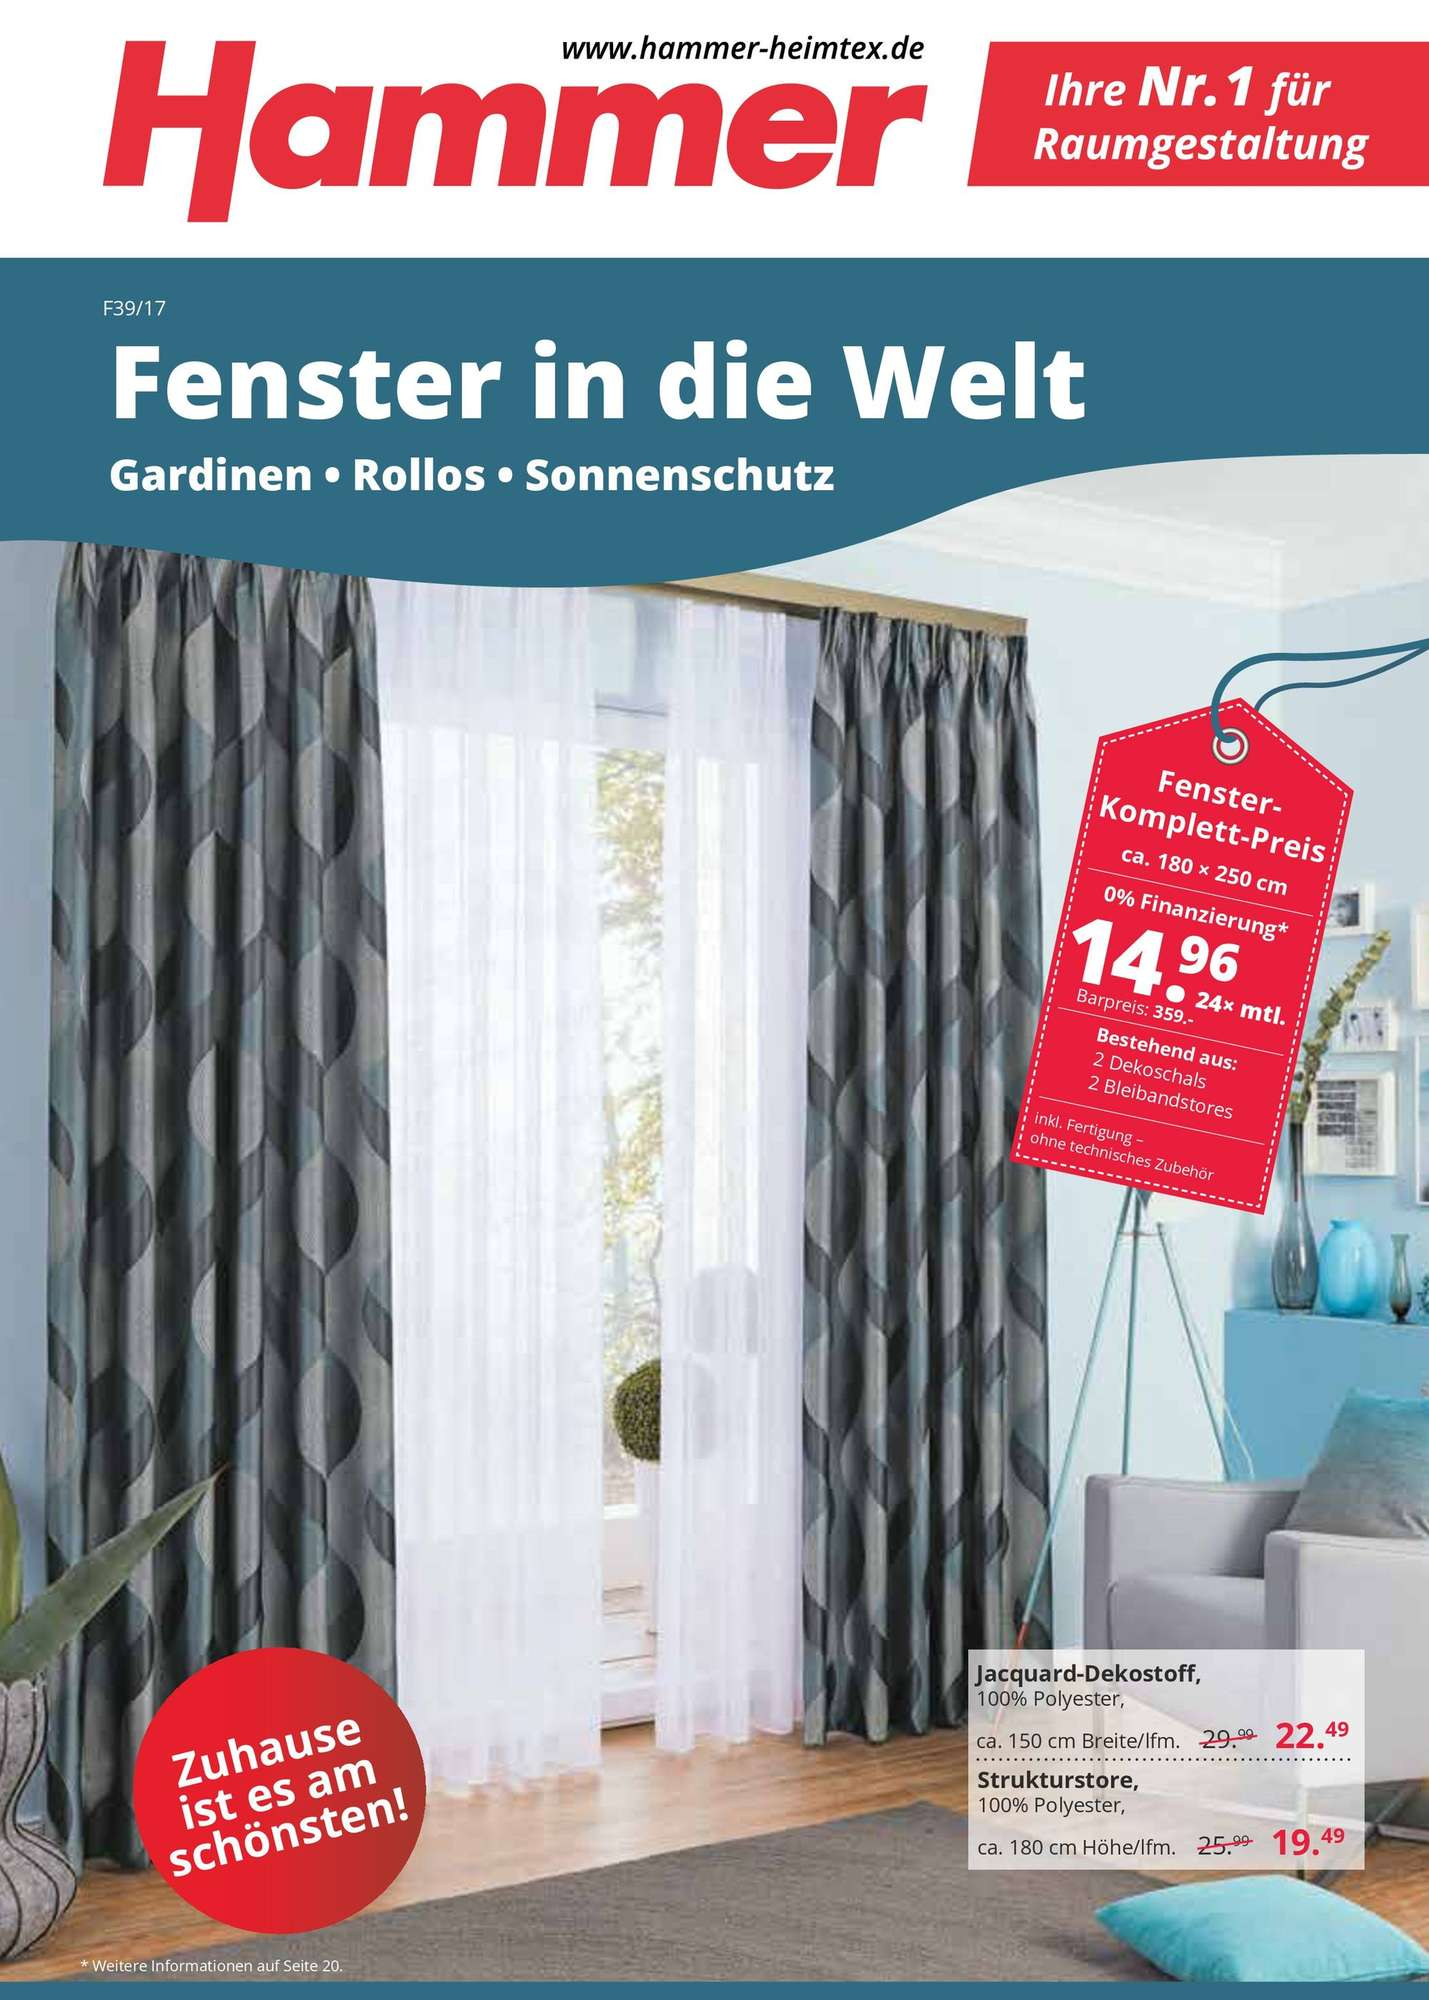 plissee hammer expo ambiente plissee b x h x cm wei with plissee hammer amazing plissee hammer. Black Bedroom Furniture Sets. Home Design Ideas